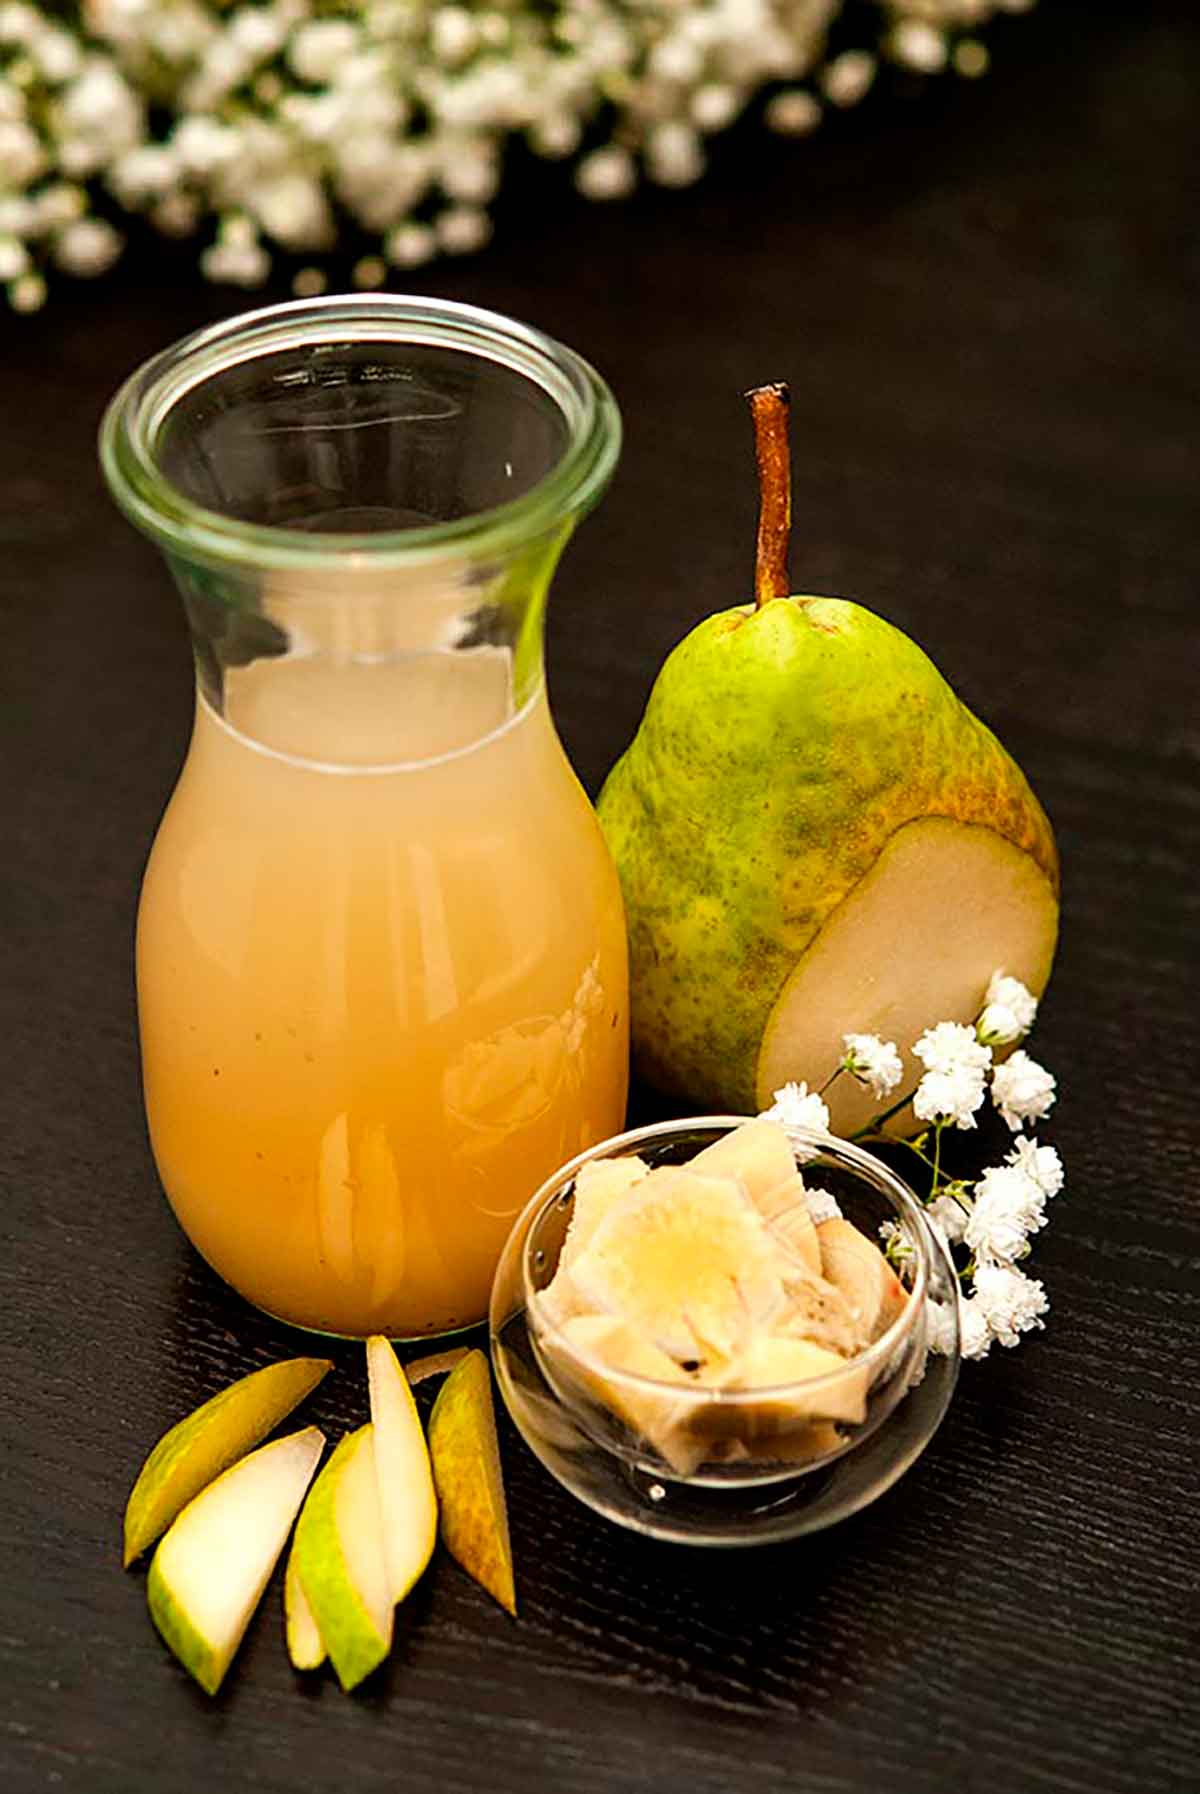 A small bottle of pear-ginger syrup on a table, along with a sliced pear, a small bowl of ginger and small pear slices.